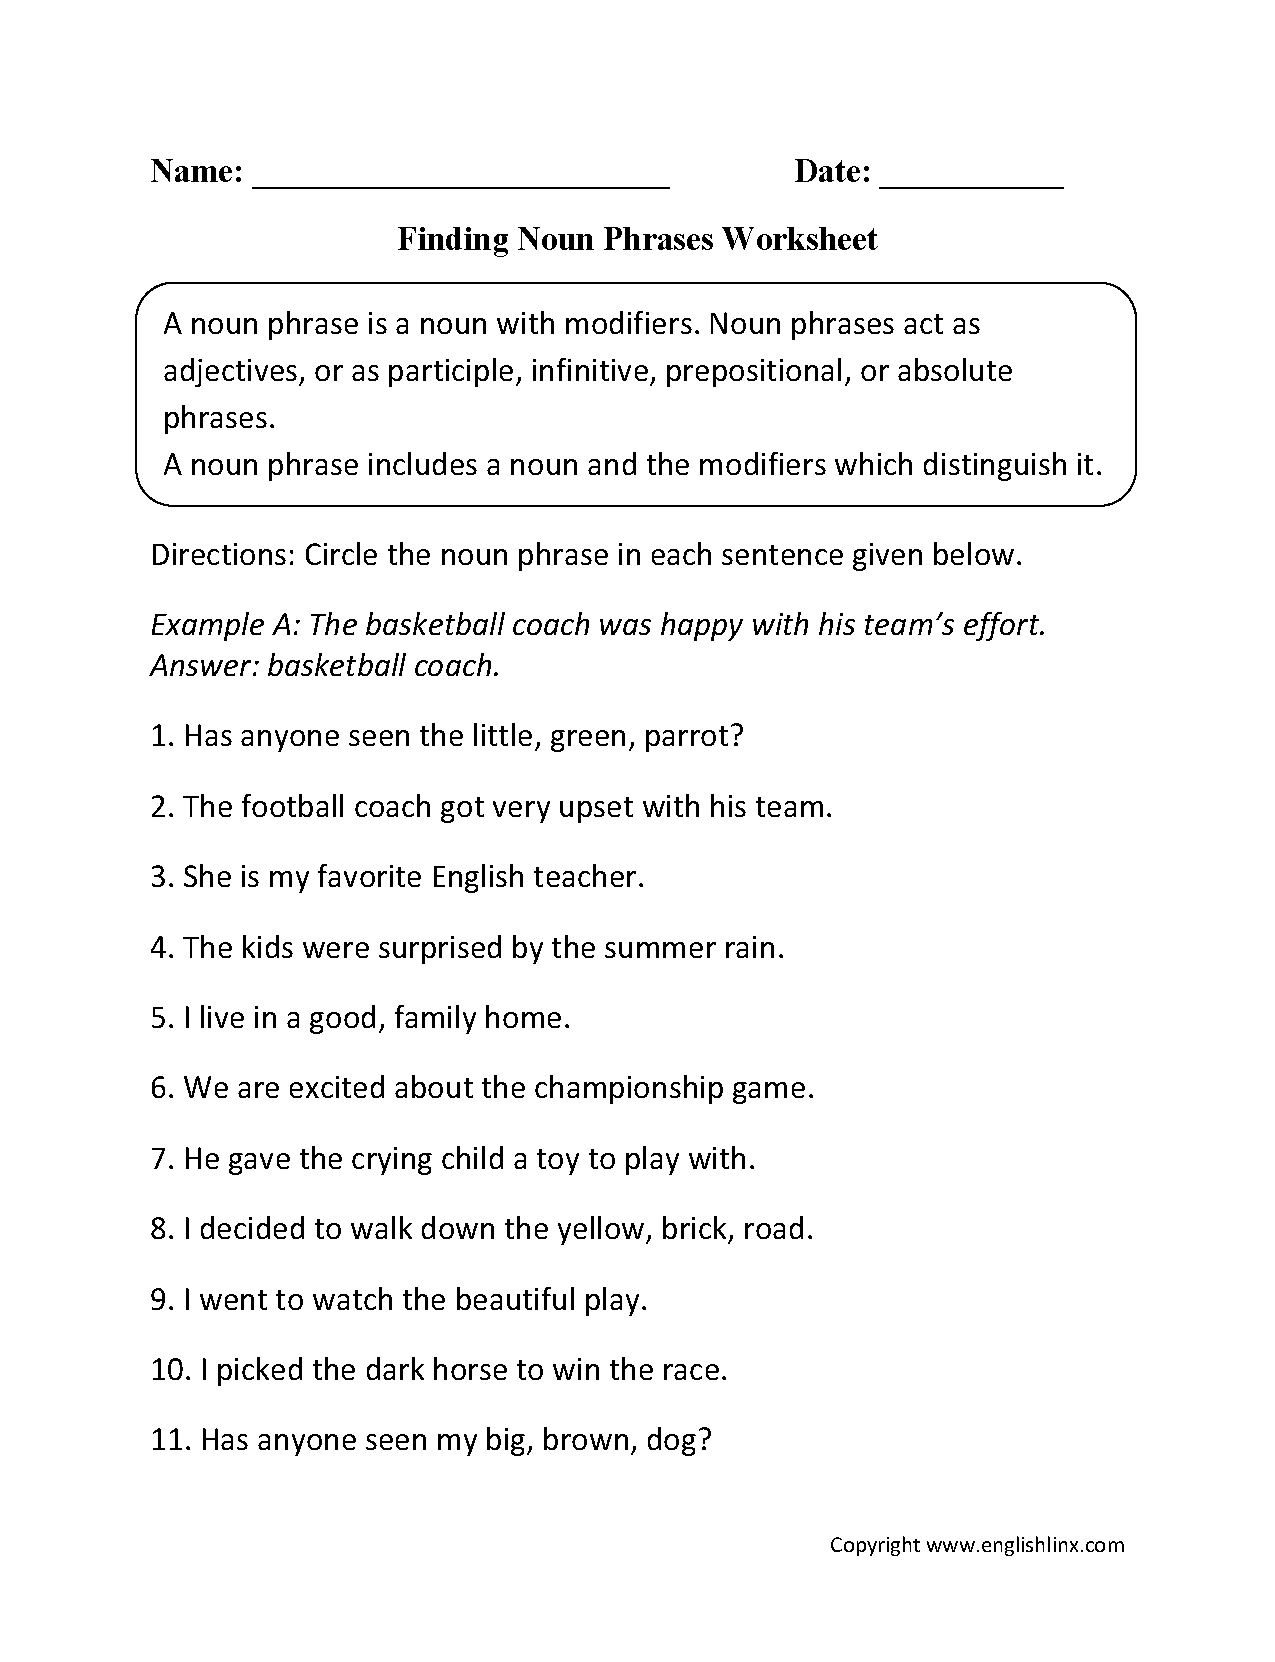 Worksheet Types Of Nouns Exercises englishlinx com nouns worksheets noun phrases worksheets